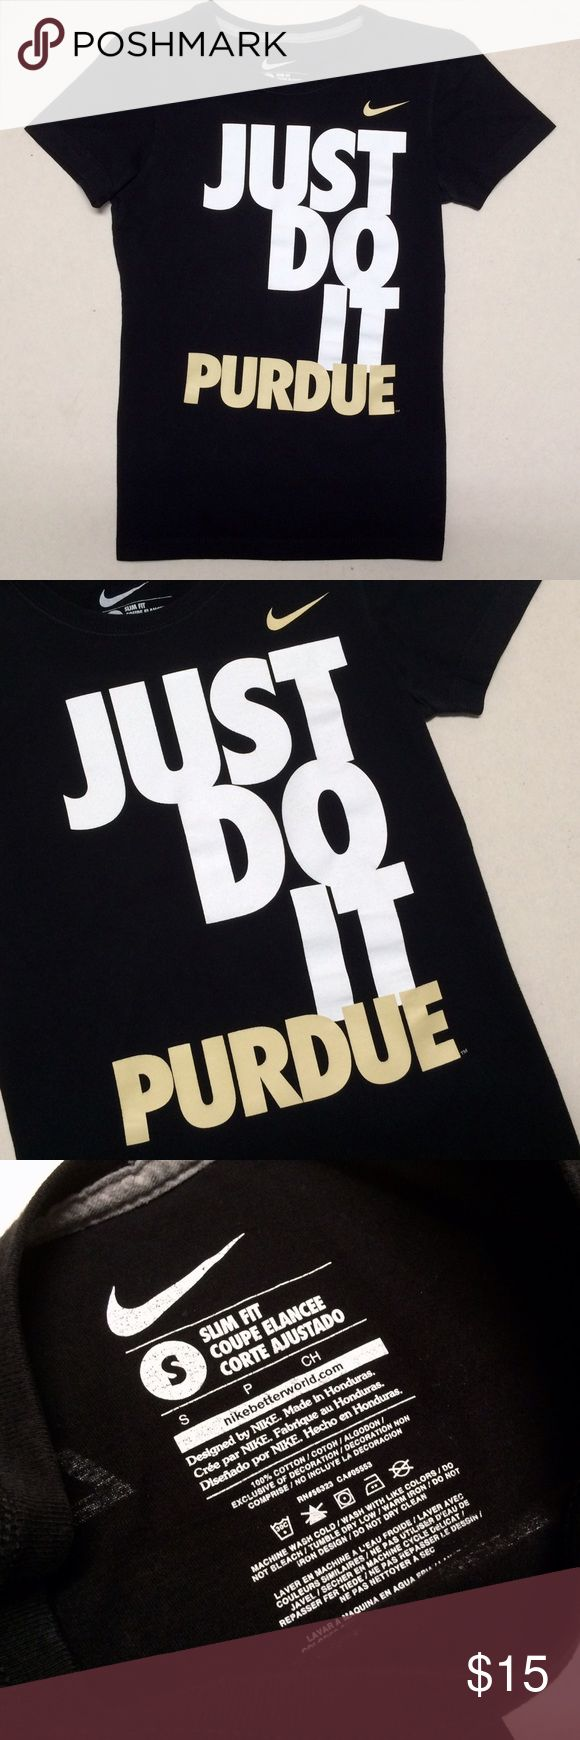 Nike Purdue University Women's Top 🖤💛 Nike - Just Do It Purdue Women's Top Purdue Boilermakers   Size Women's Small  Slim Fit Like new condition!   Boiler Up!! 🚂 Nike Tops Tees - Short Sleeve